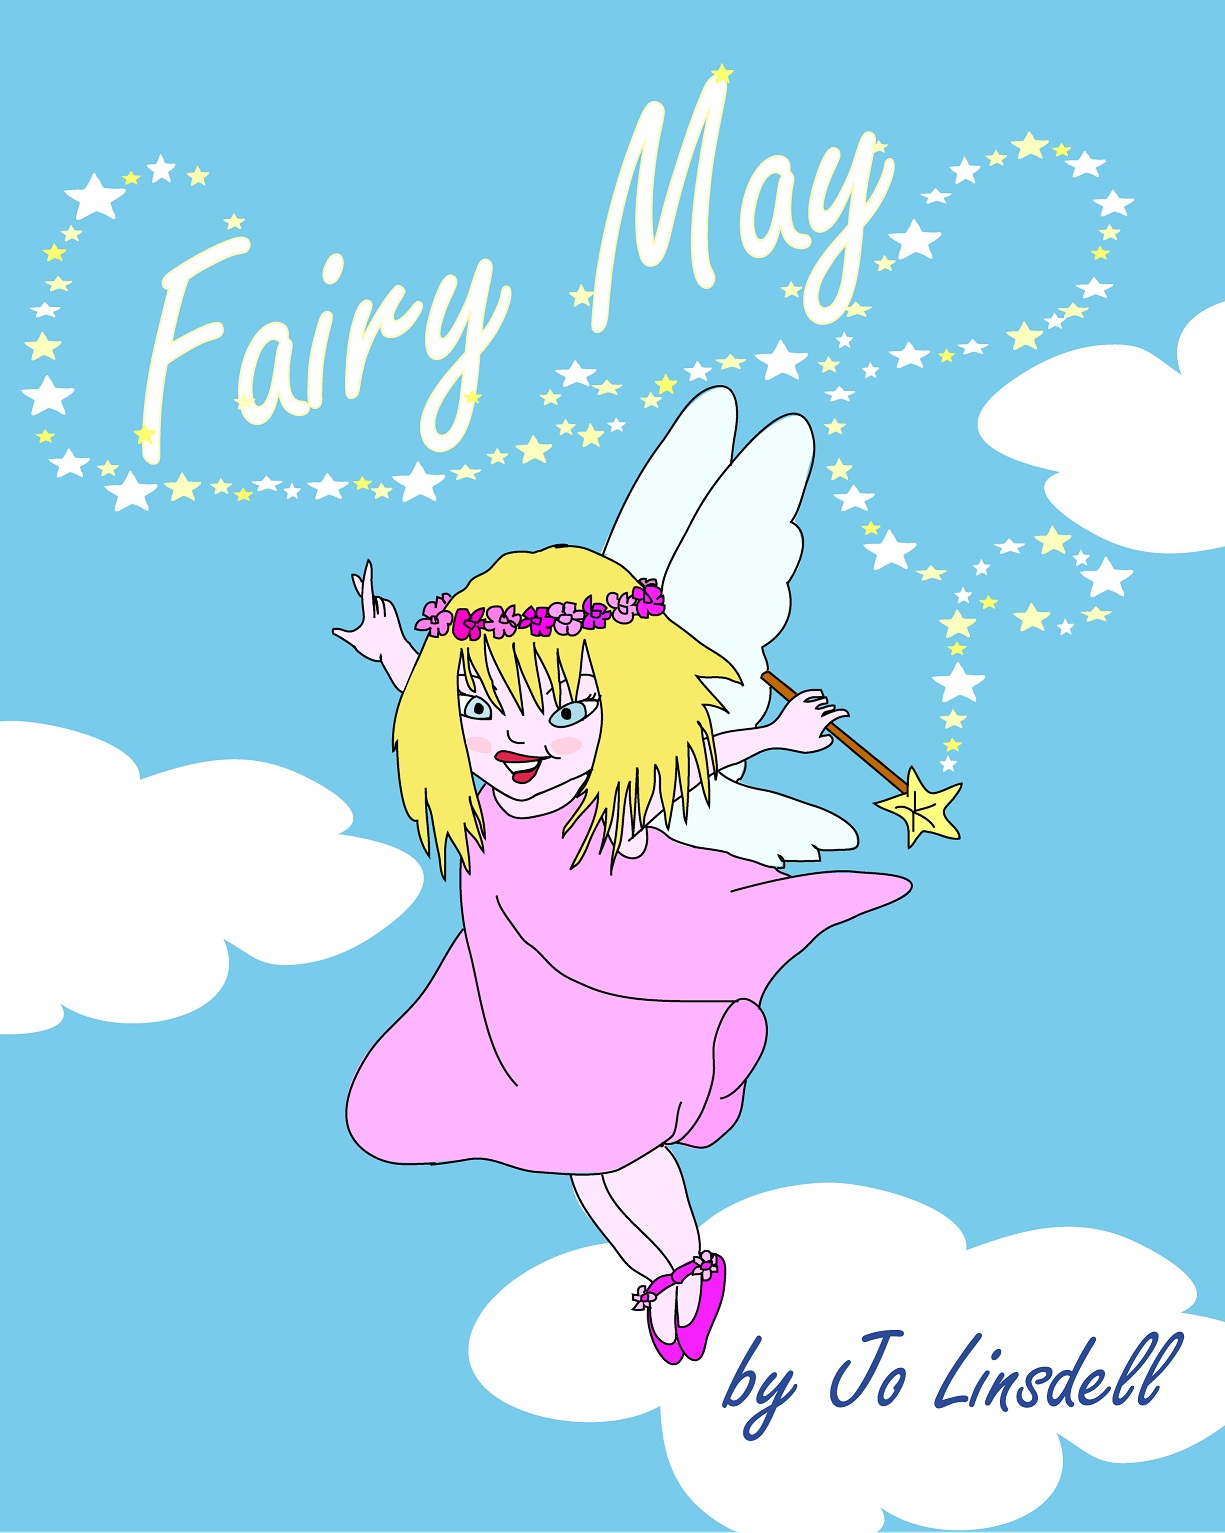 Fairy May by Jo Linsdell